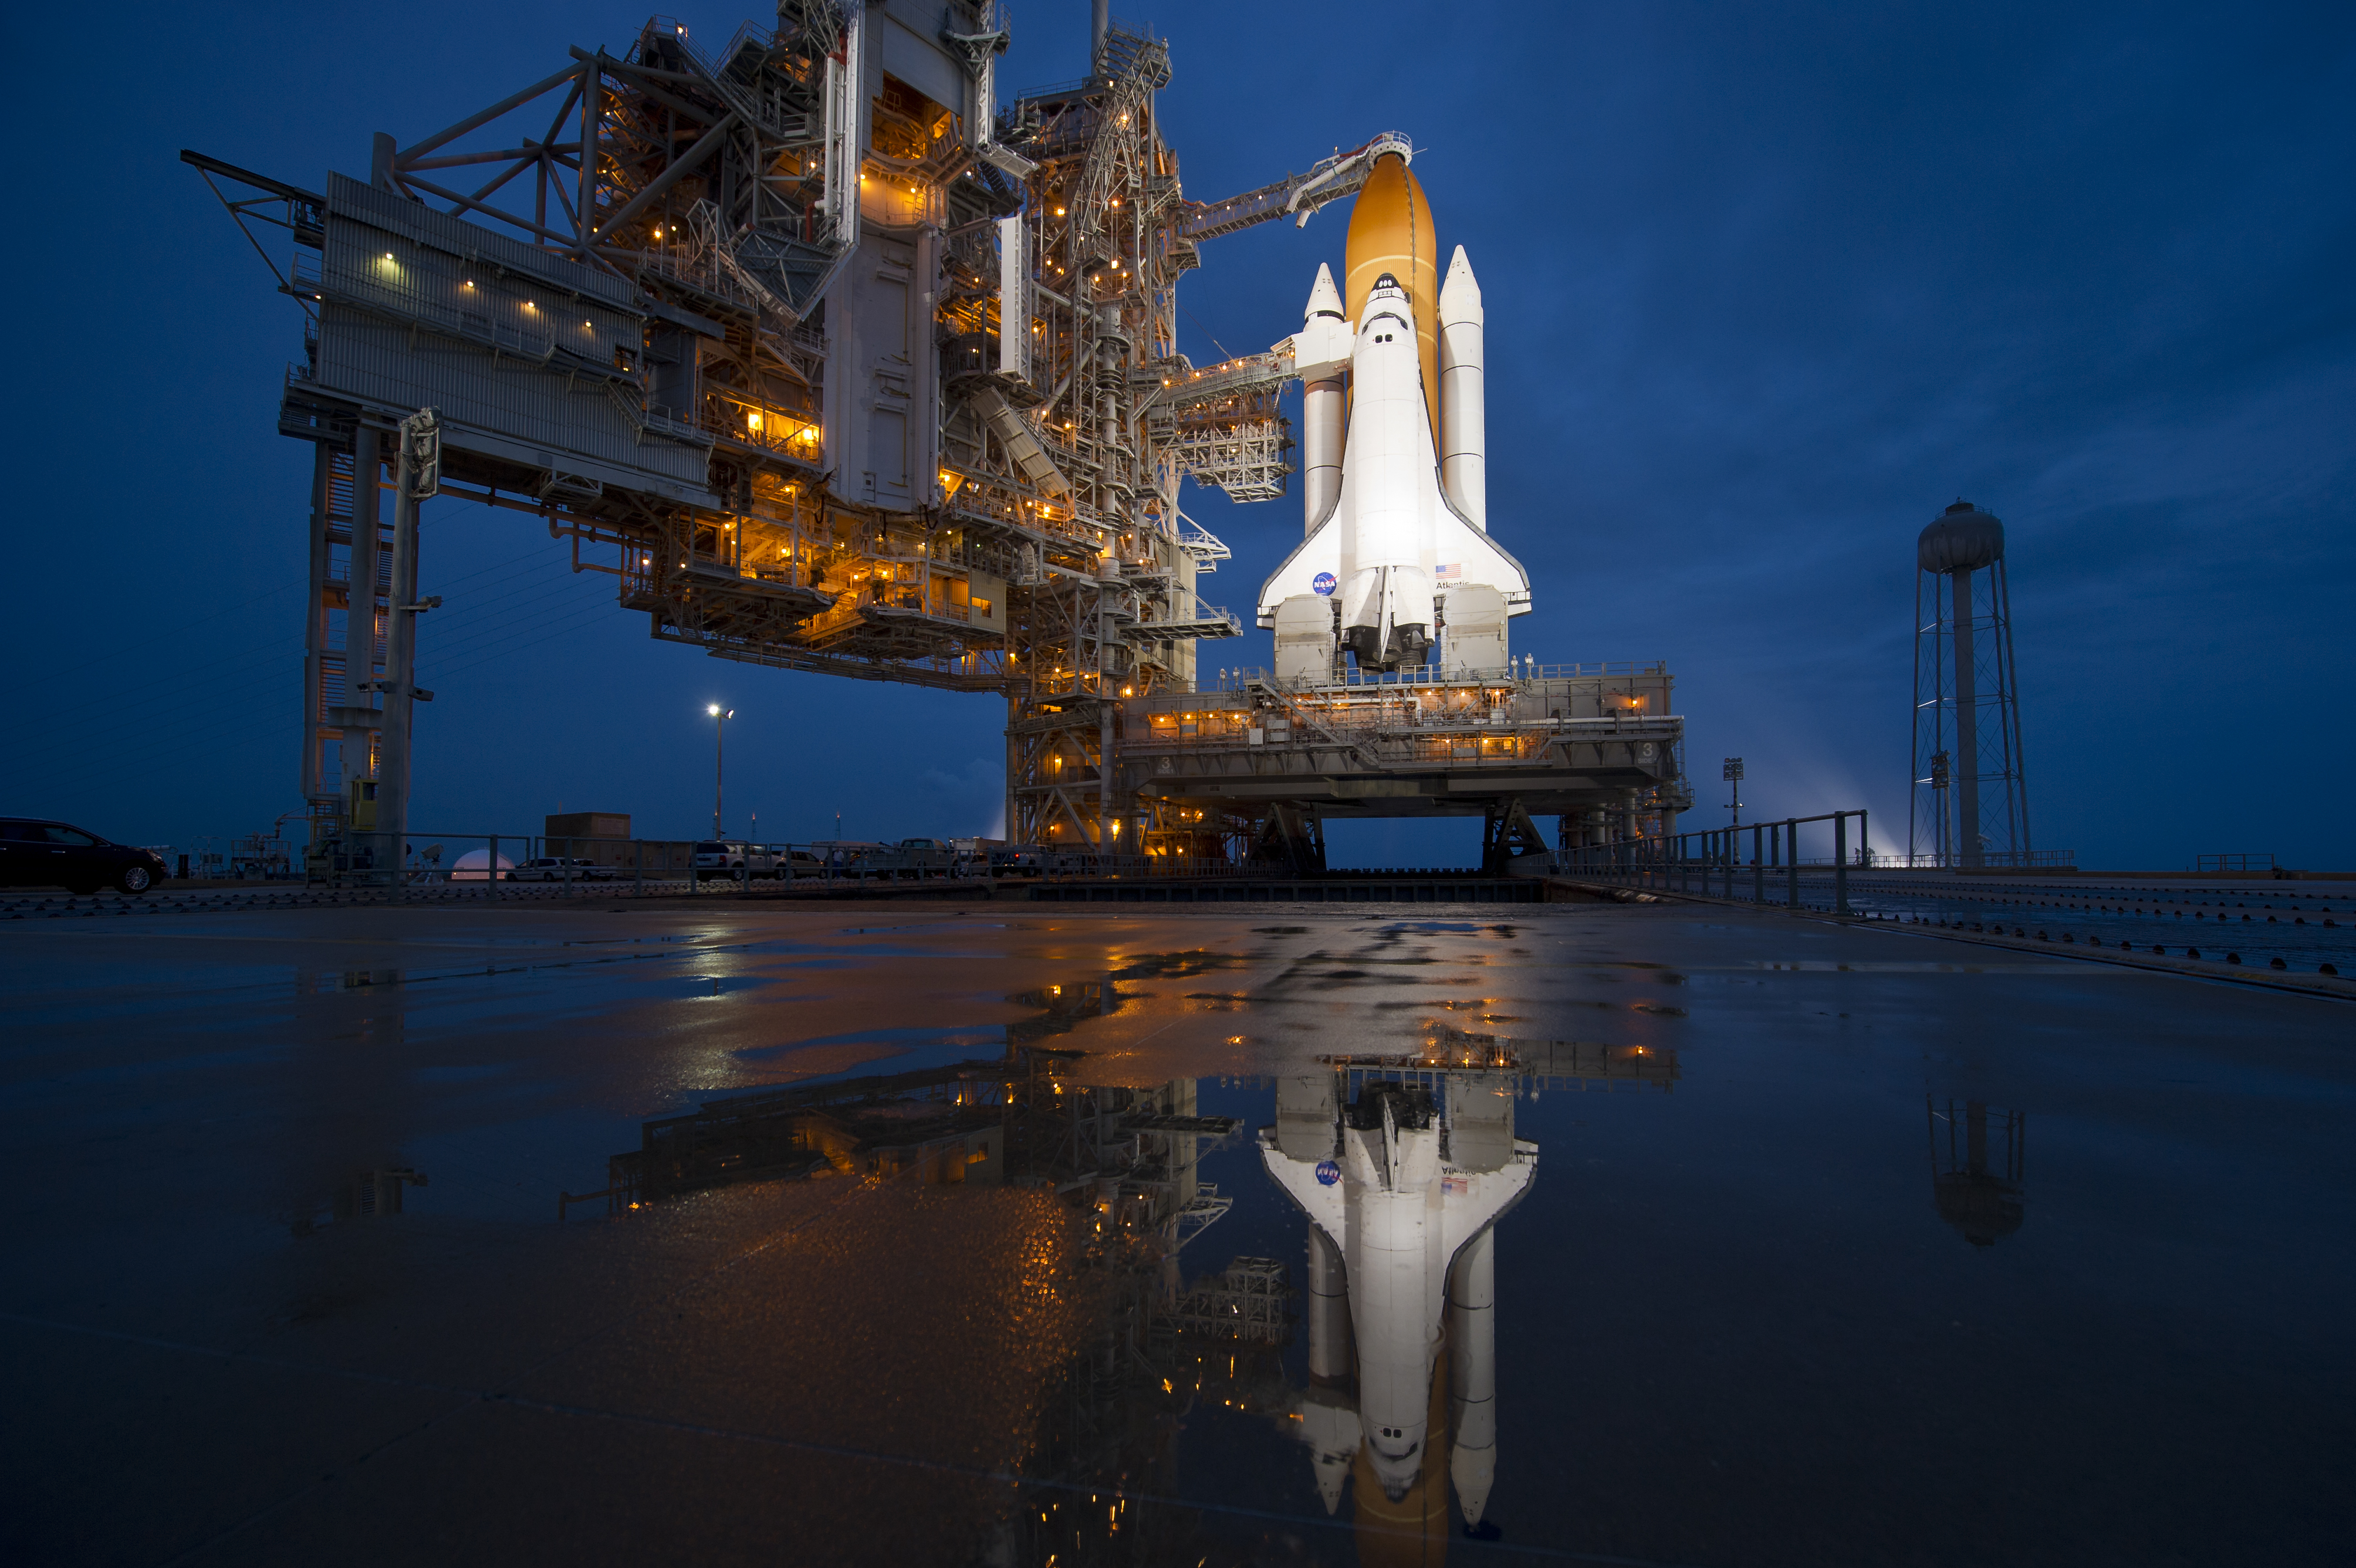 PICTURE SHOWS: The space shuttle Atlantis is seen shortly after the rotating service structure (RSS) was rolled back at launch pad 39a, Thursday, July 7, 2011 at the NASA Kennedy Space Center in Cape Canaveral, Fla.  Atlantis is set to liftoff Friday, July 8, on the final flight of the shuttle program, STS-135, a 12-day mission to the International Space Station.  ...   Prepare to have your mind blown - NASA has collected together a treasure trove of more than 140,000 images, videos and audio files.  The stunning collection consolidates imagery spread across more than 60 collections into one searchable location, called the NASA Image and Video Library website.  Cover Images have chosen a gallery of the most popular